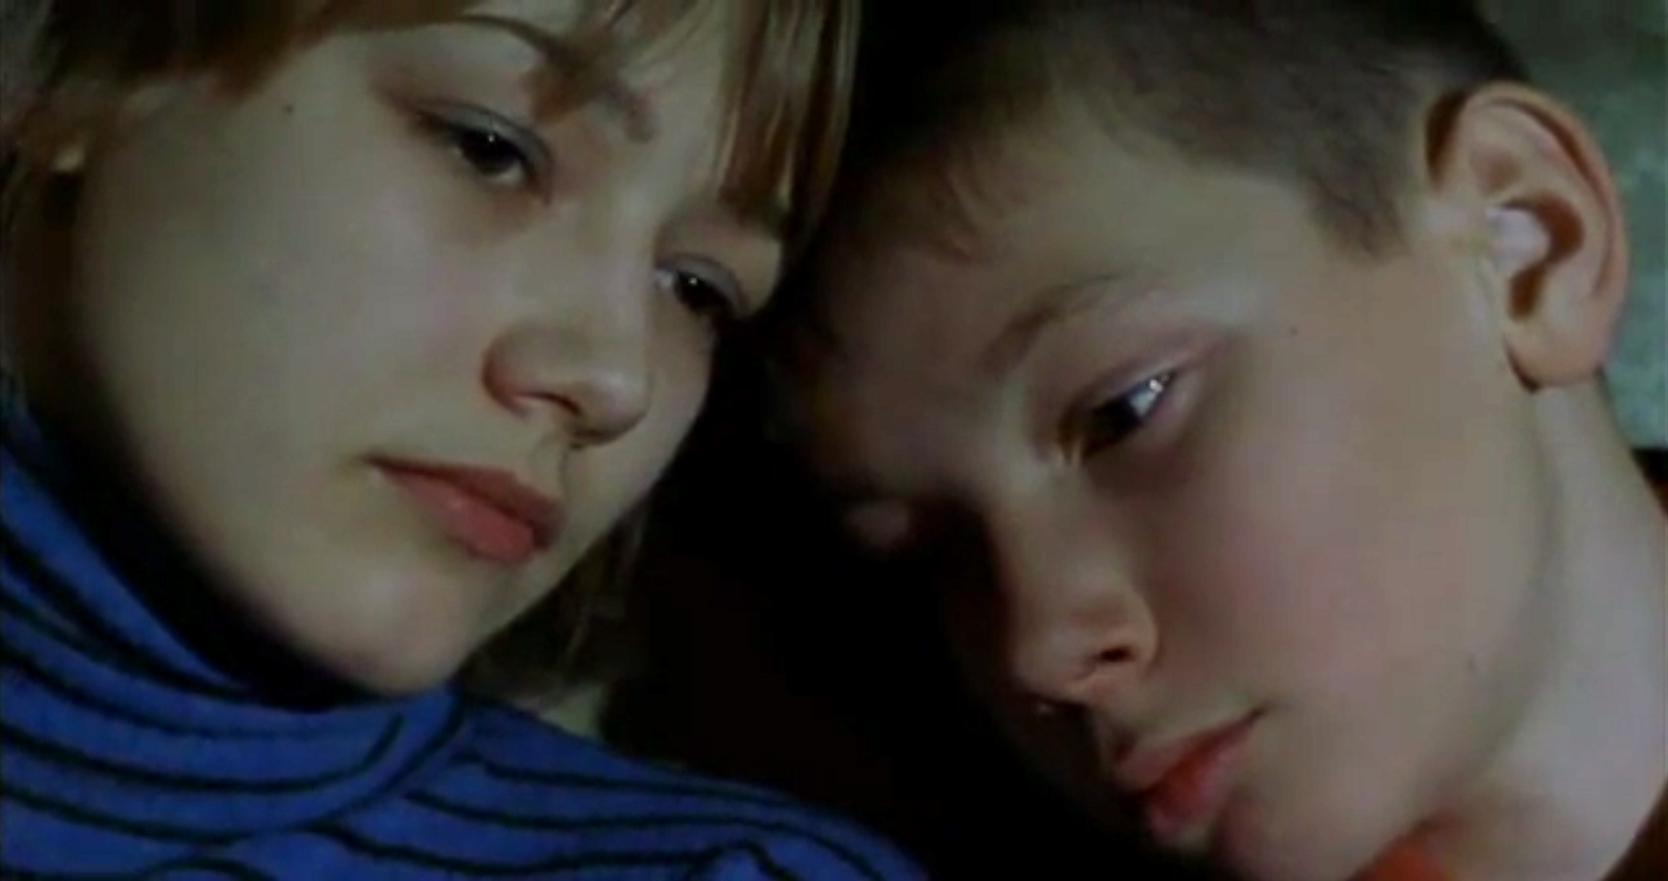 Oksana Akinshina and Artyom Bogucharskiy in Lilja 4-ever (2002)